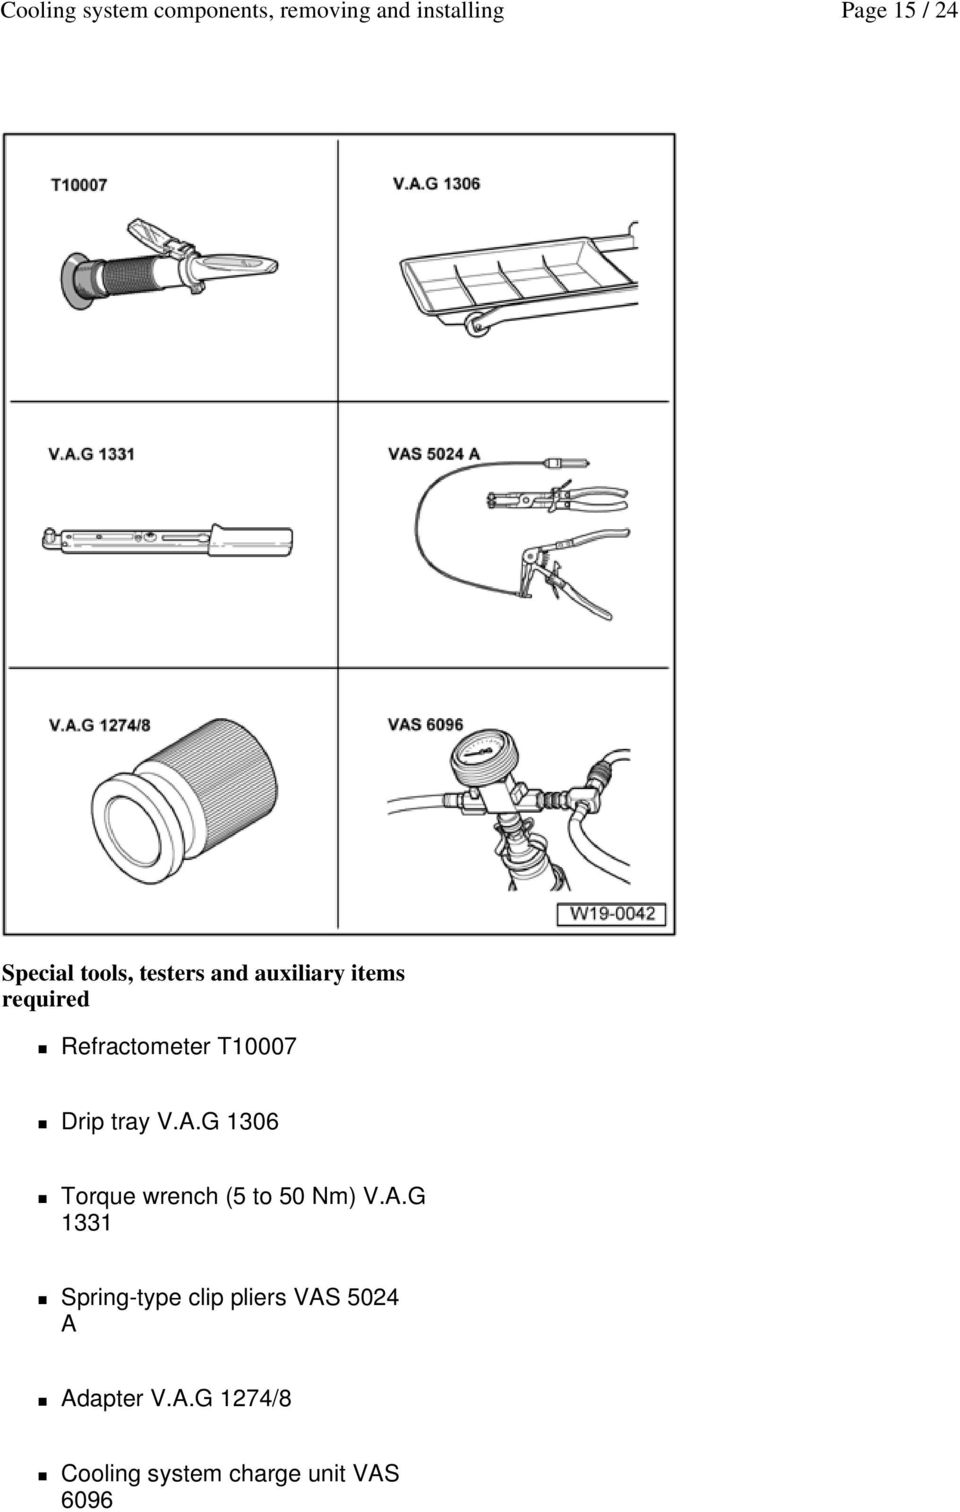 G 1306 Torque wrench (5 to 50 Nm) V.A.